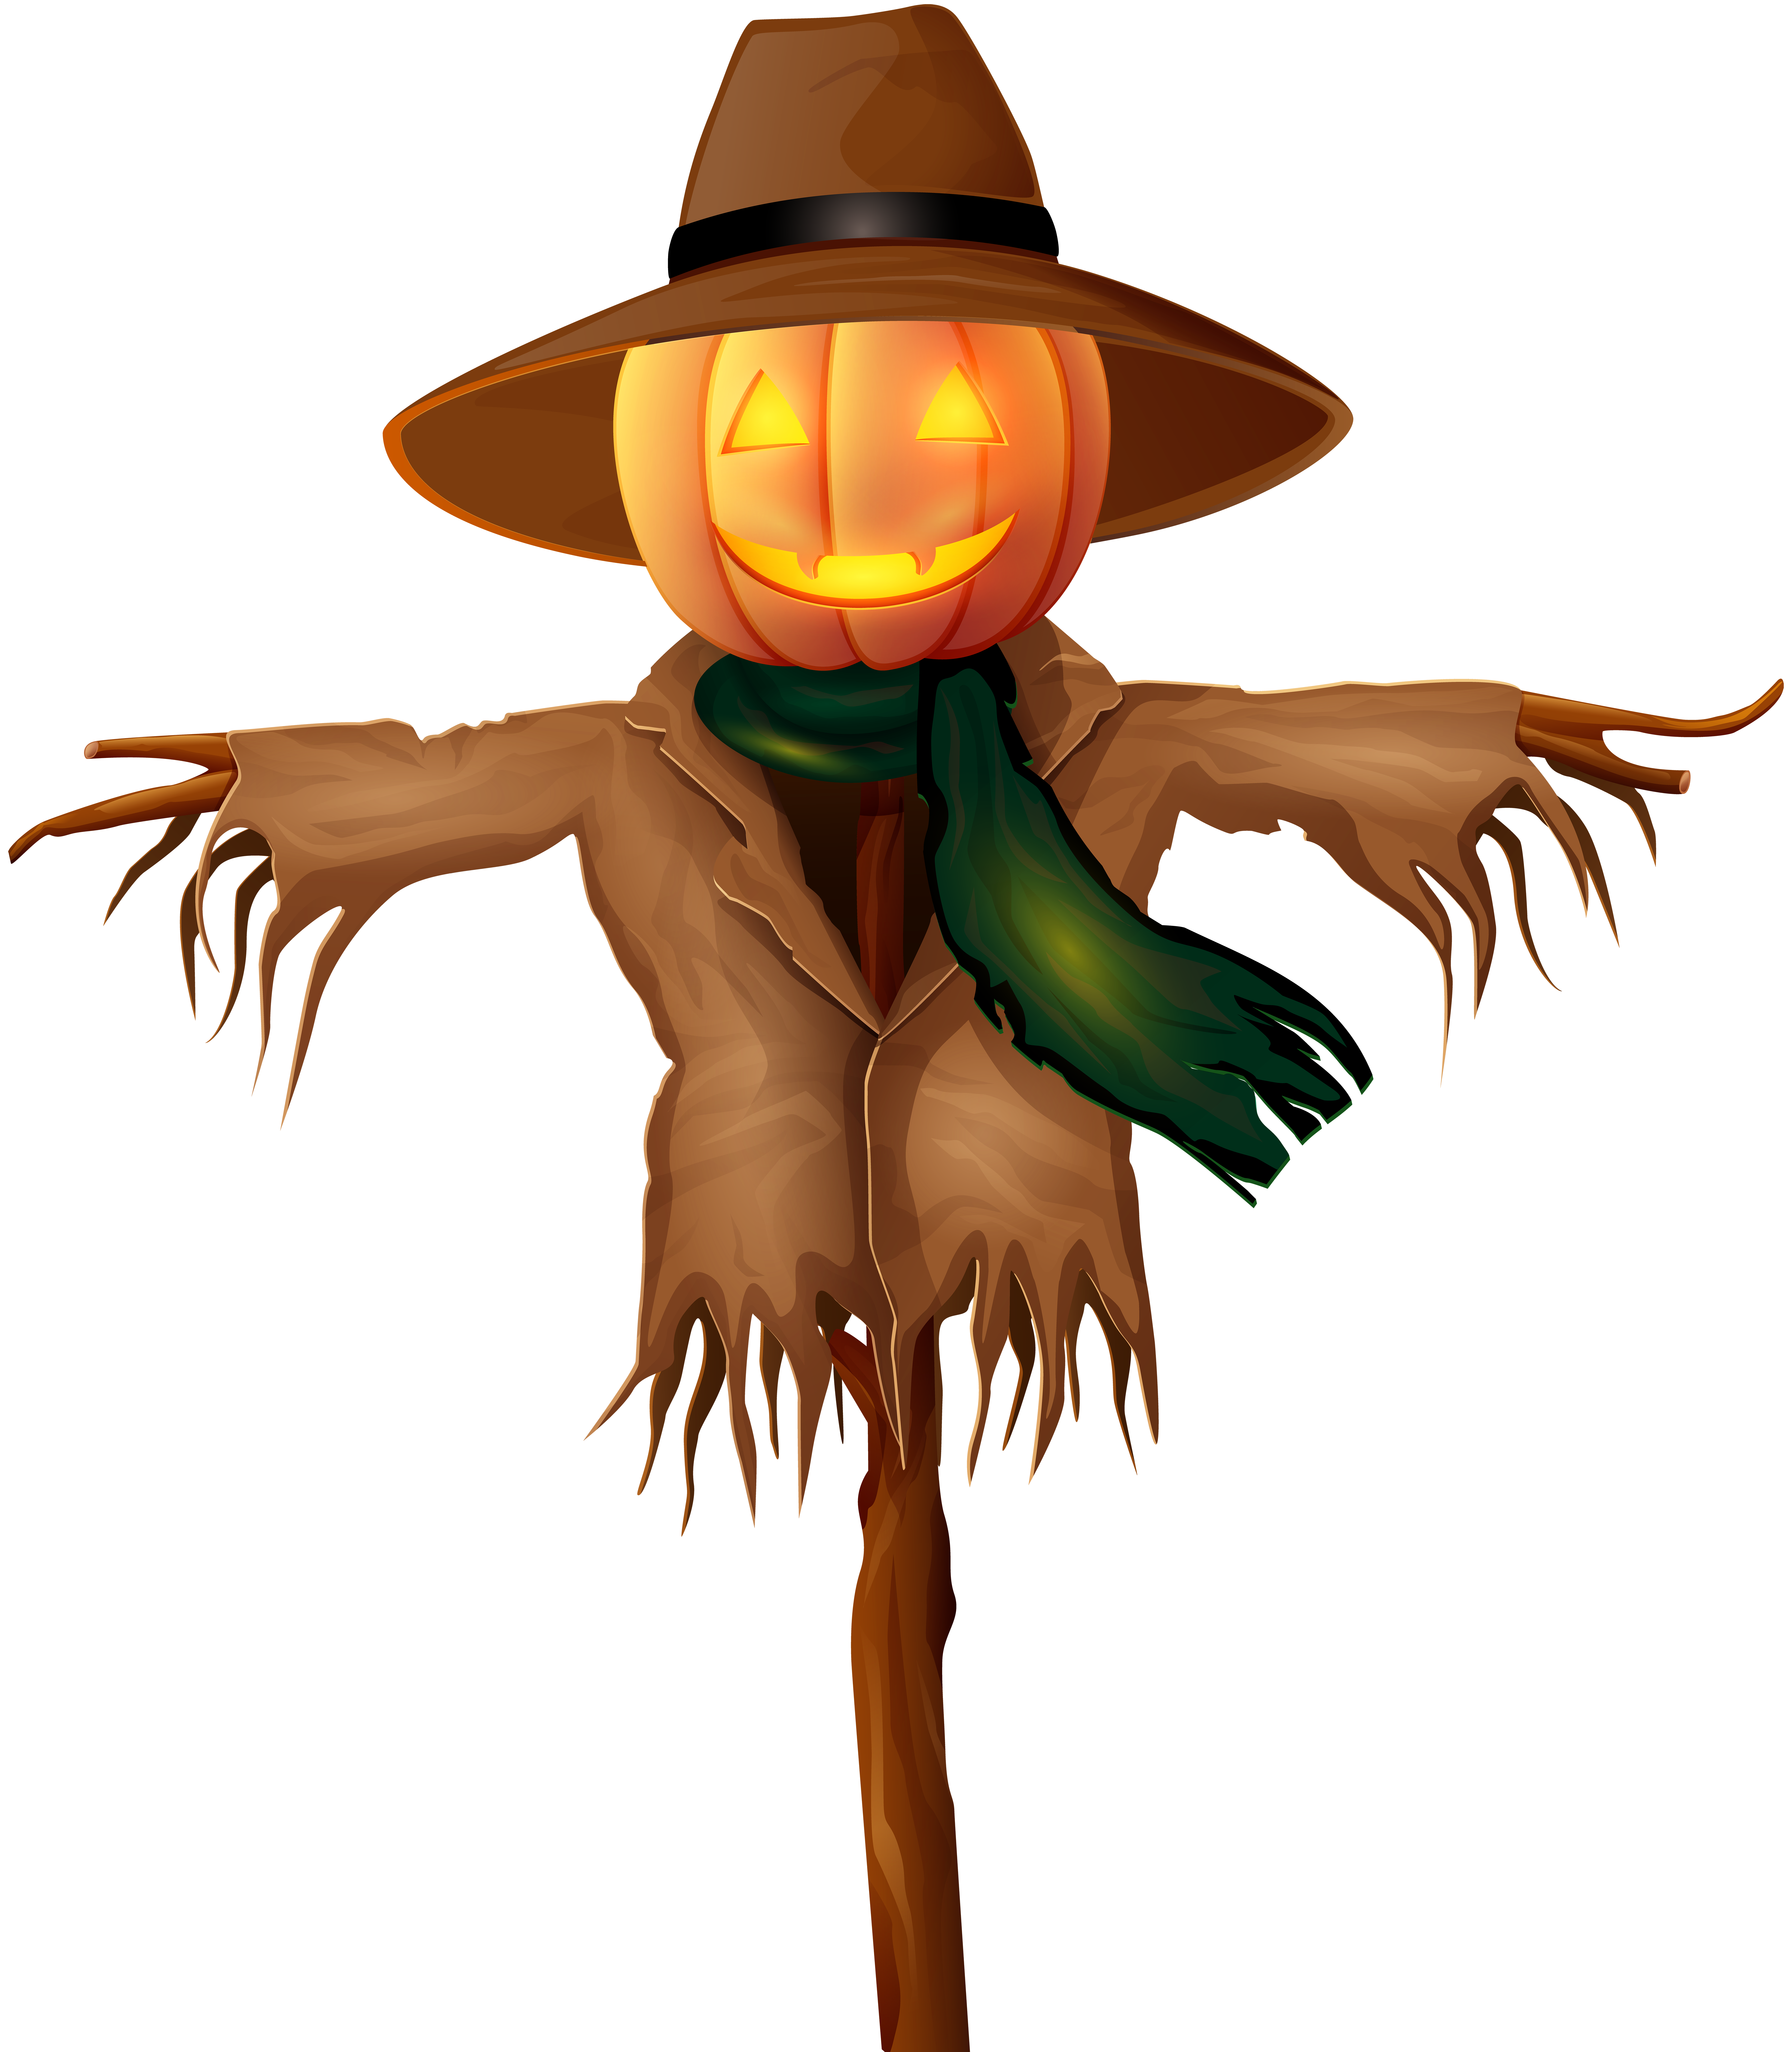 Scarecrow clipart scary. Halloween png gold clip